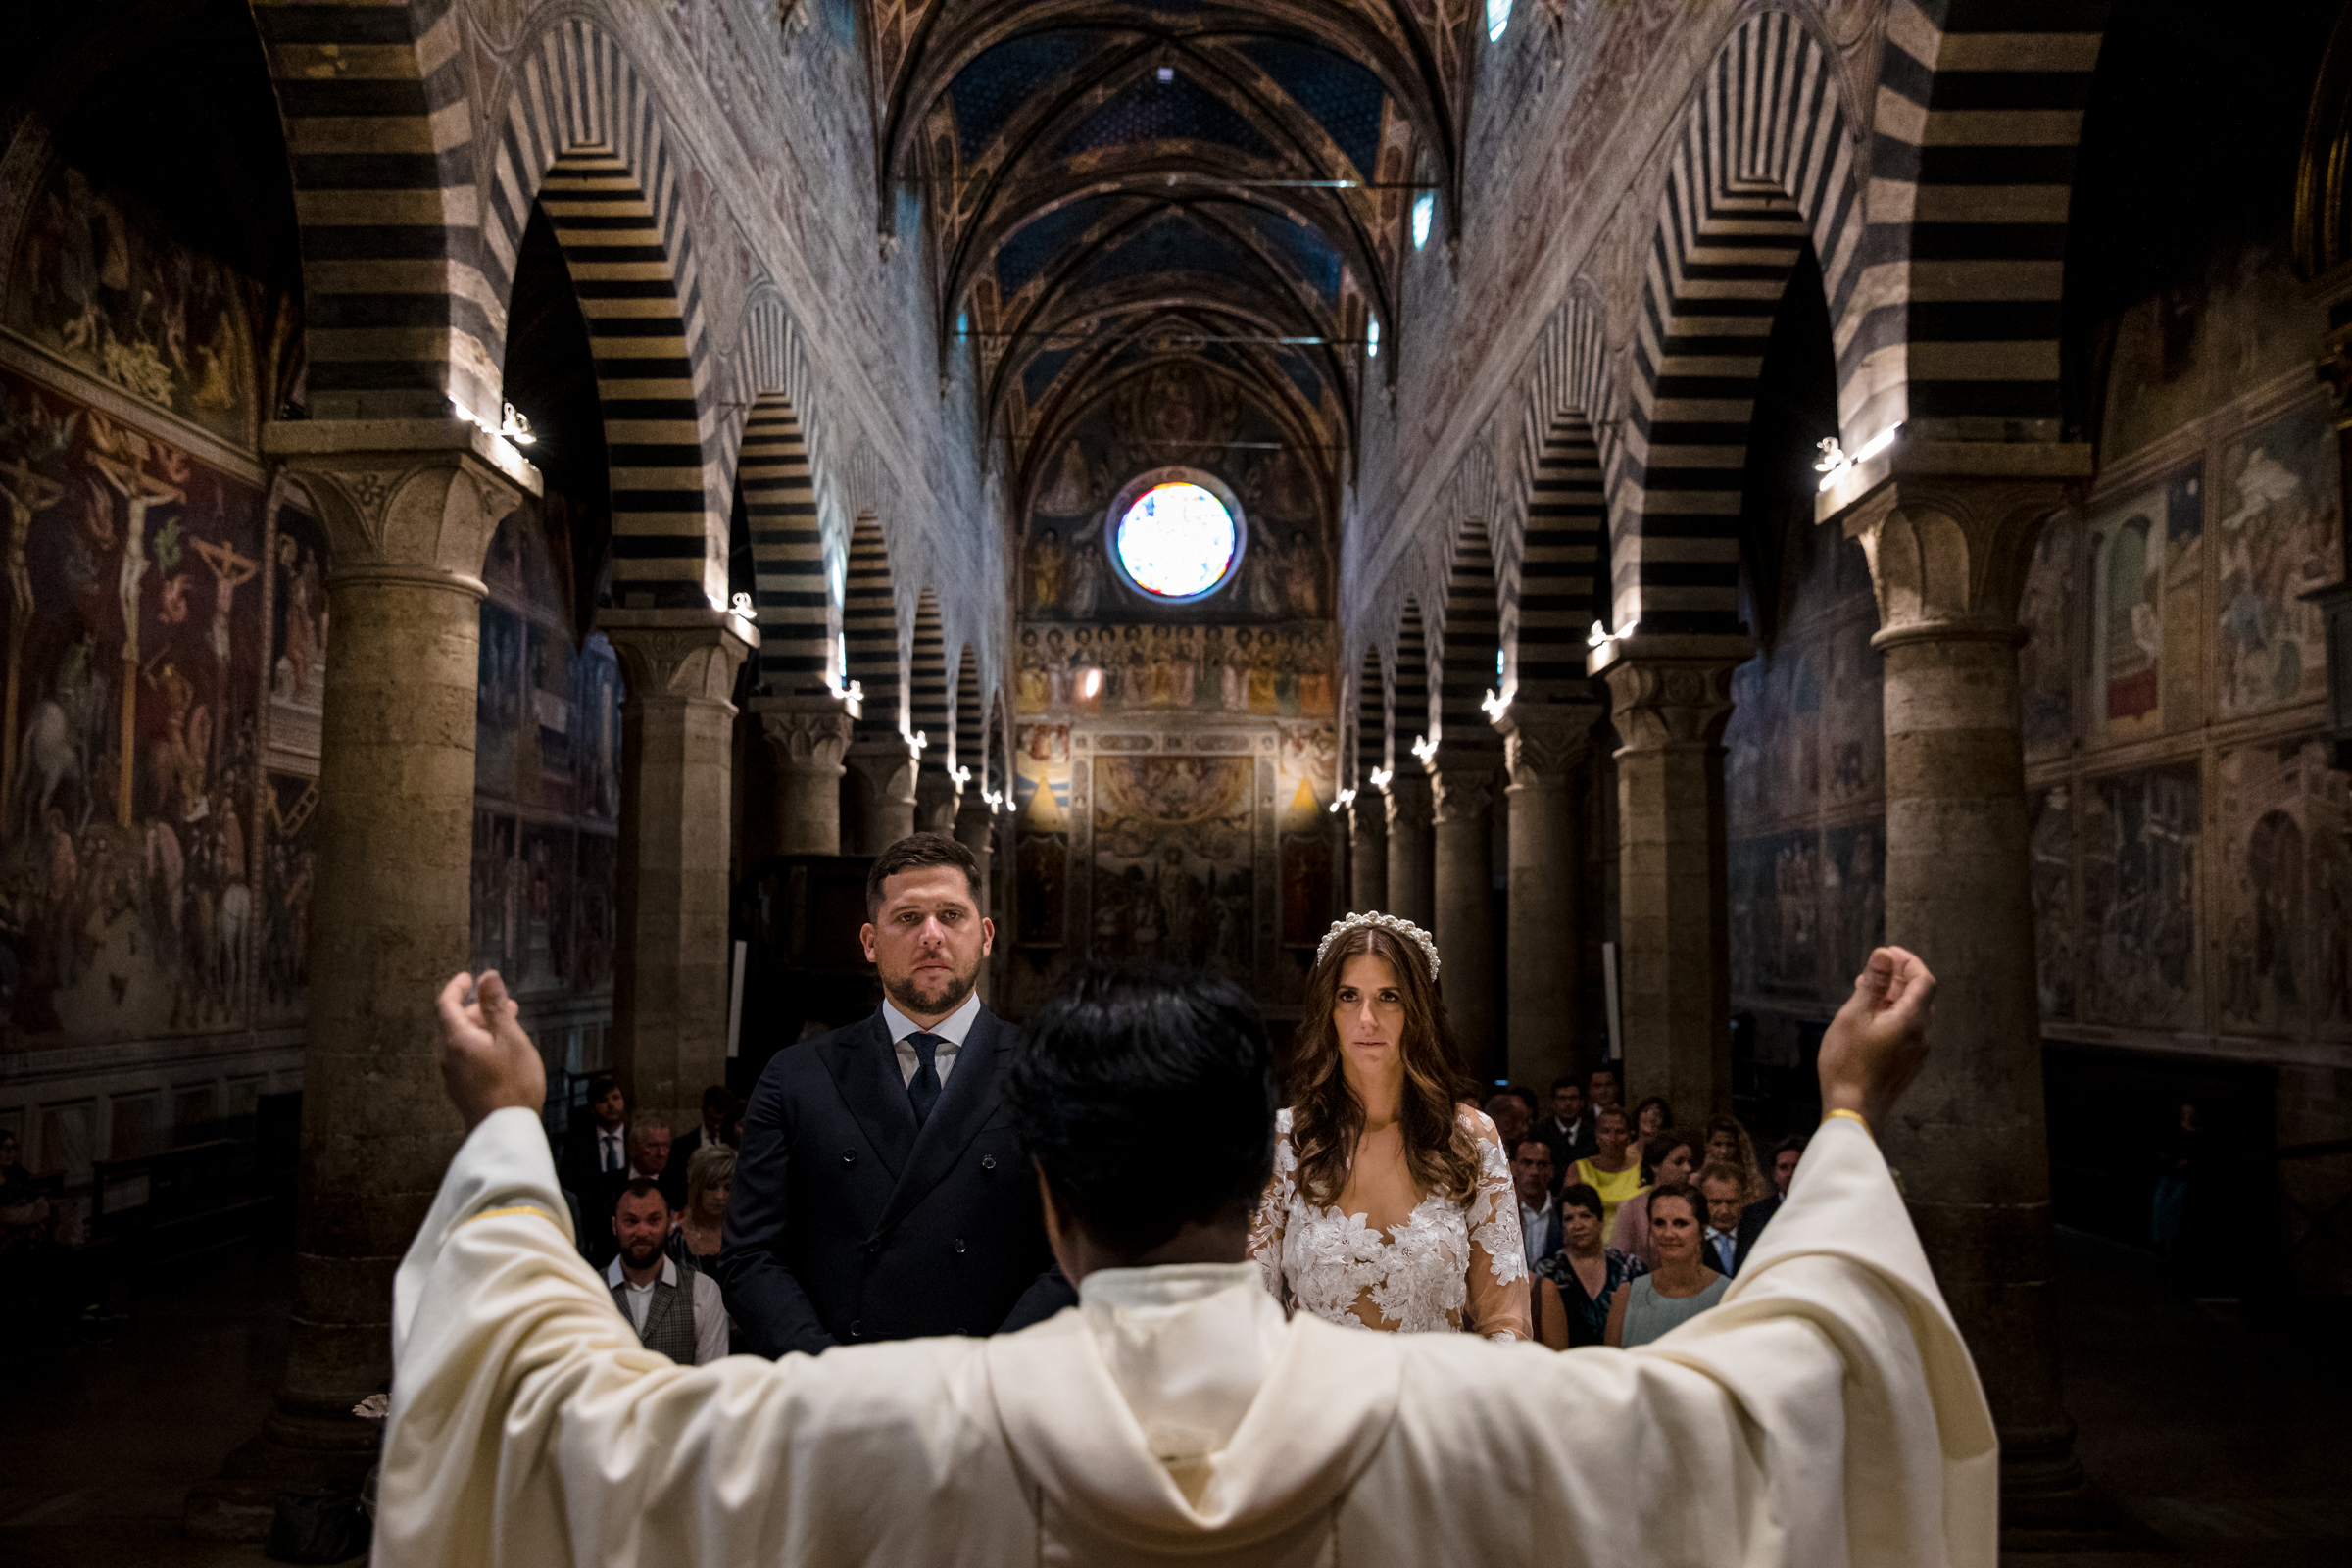 Solemn moment at church wedding ceremony - photo by D2 Photography